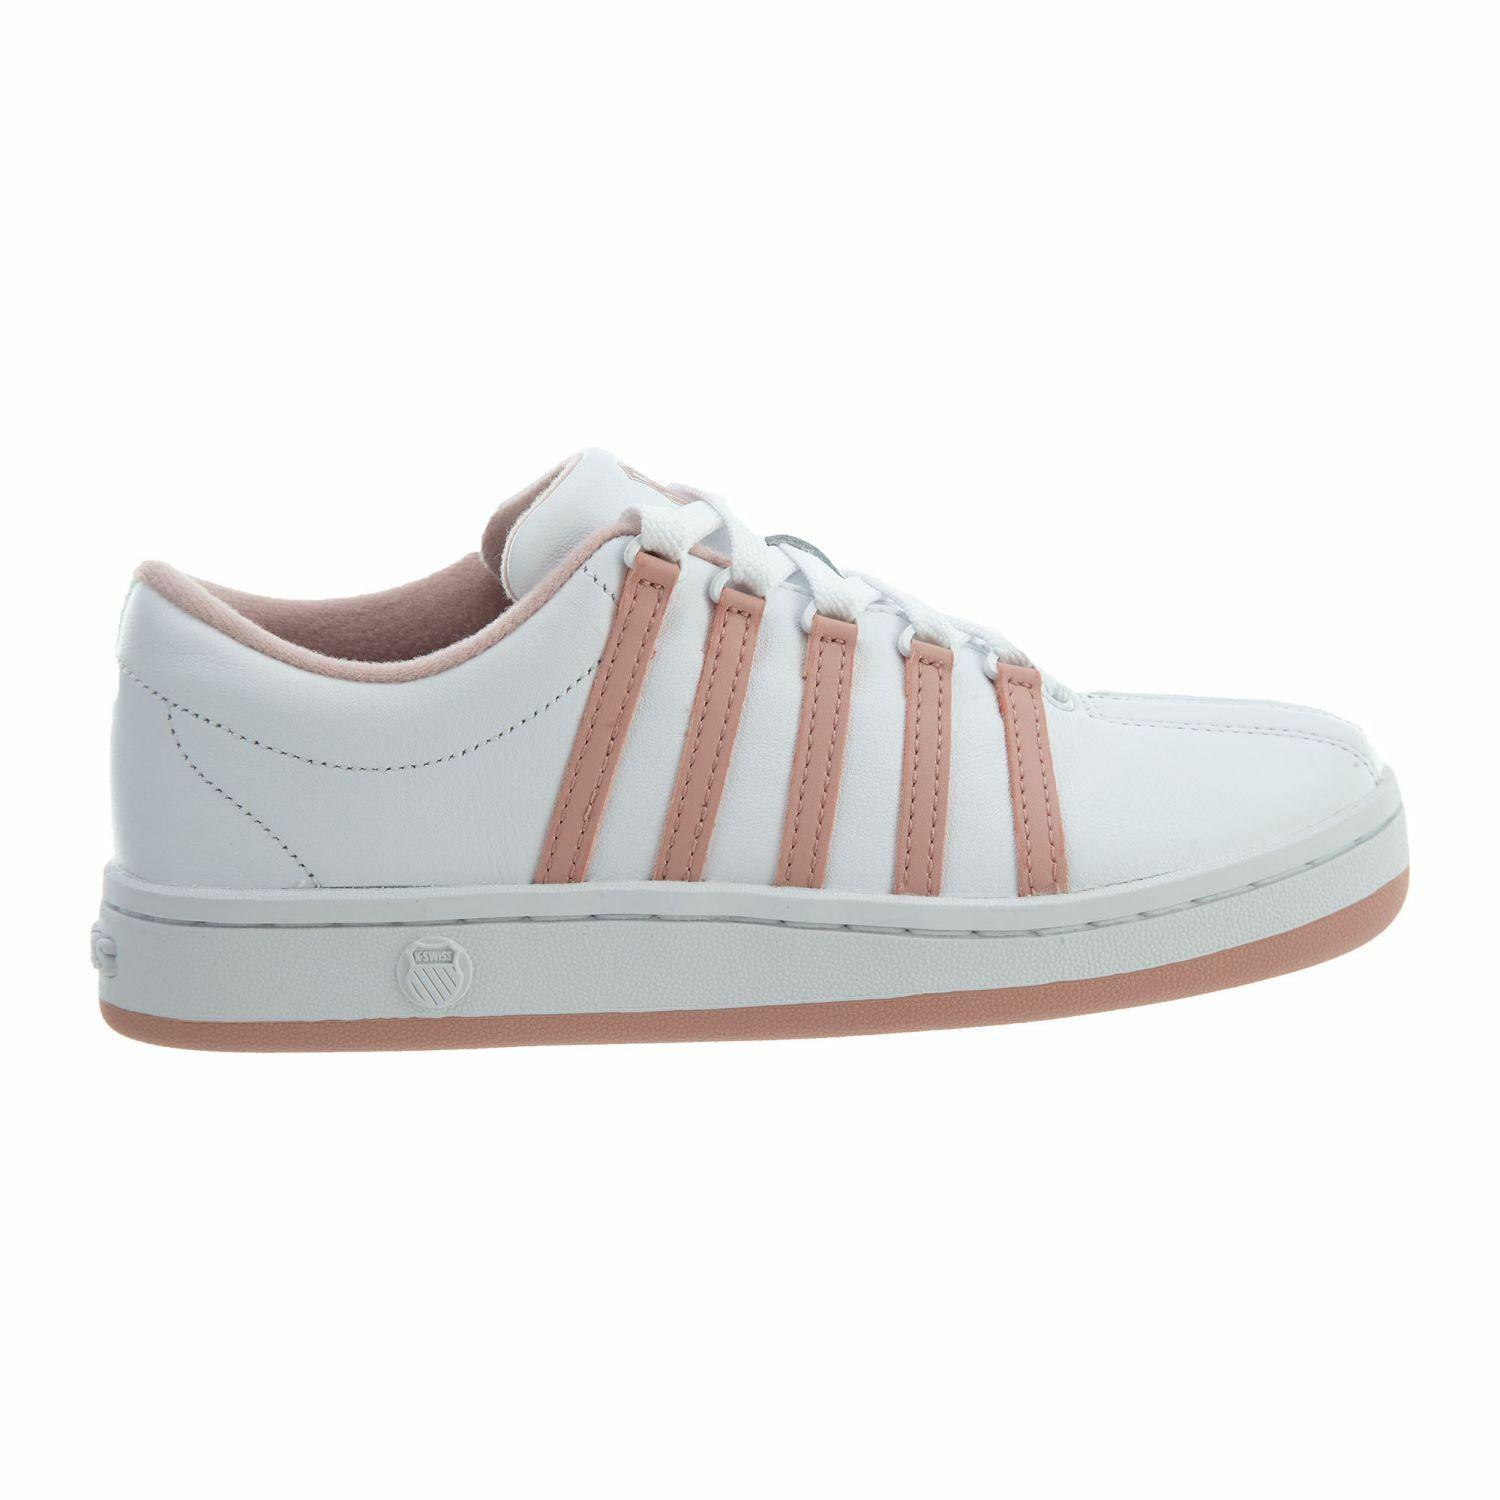 K-Swiss Classic 88 Donna 92248-145 bianca Cameo Pink Leather Shoes Size 5.5